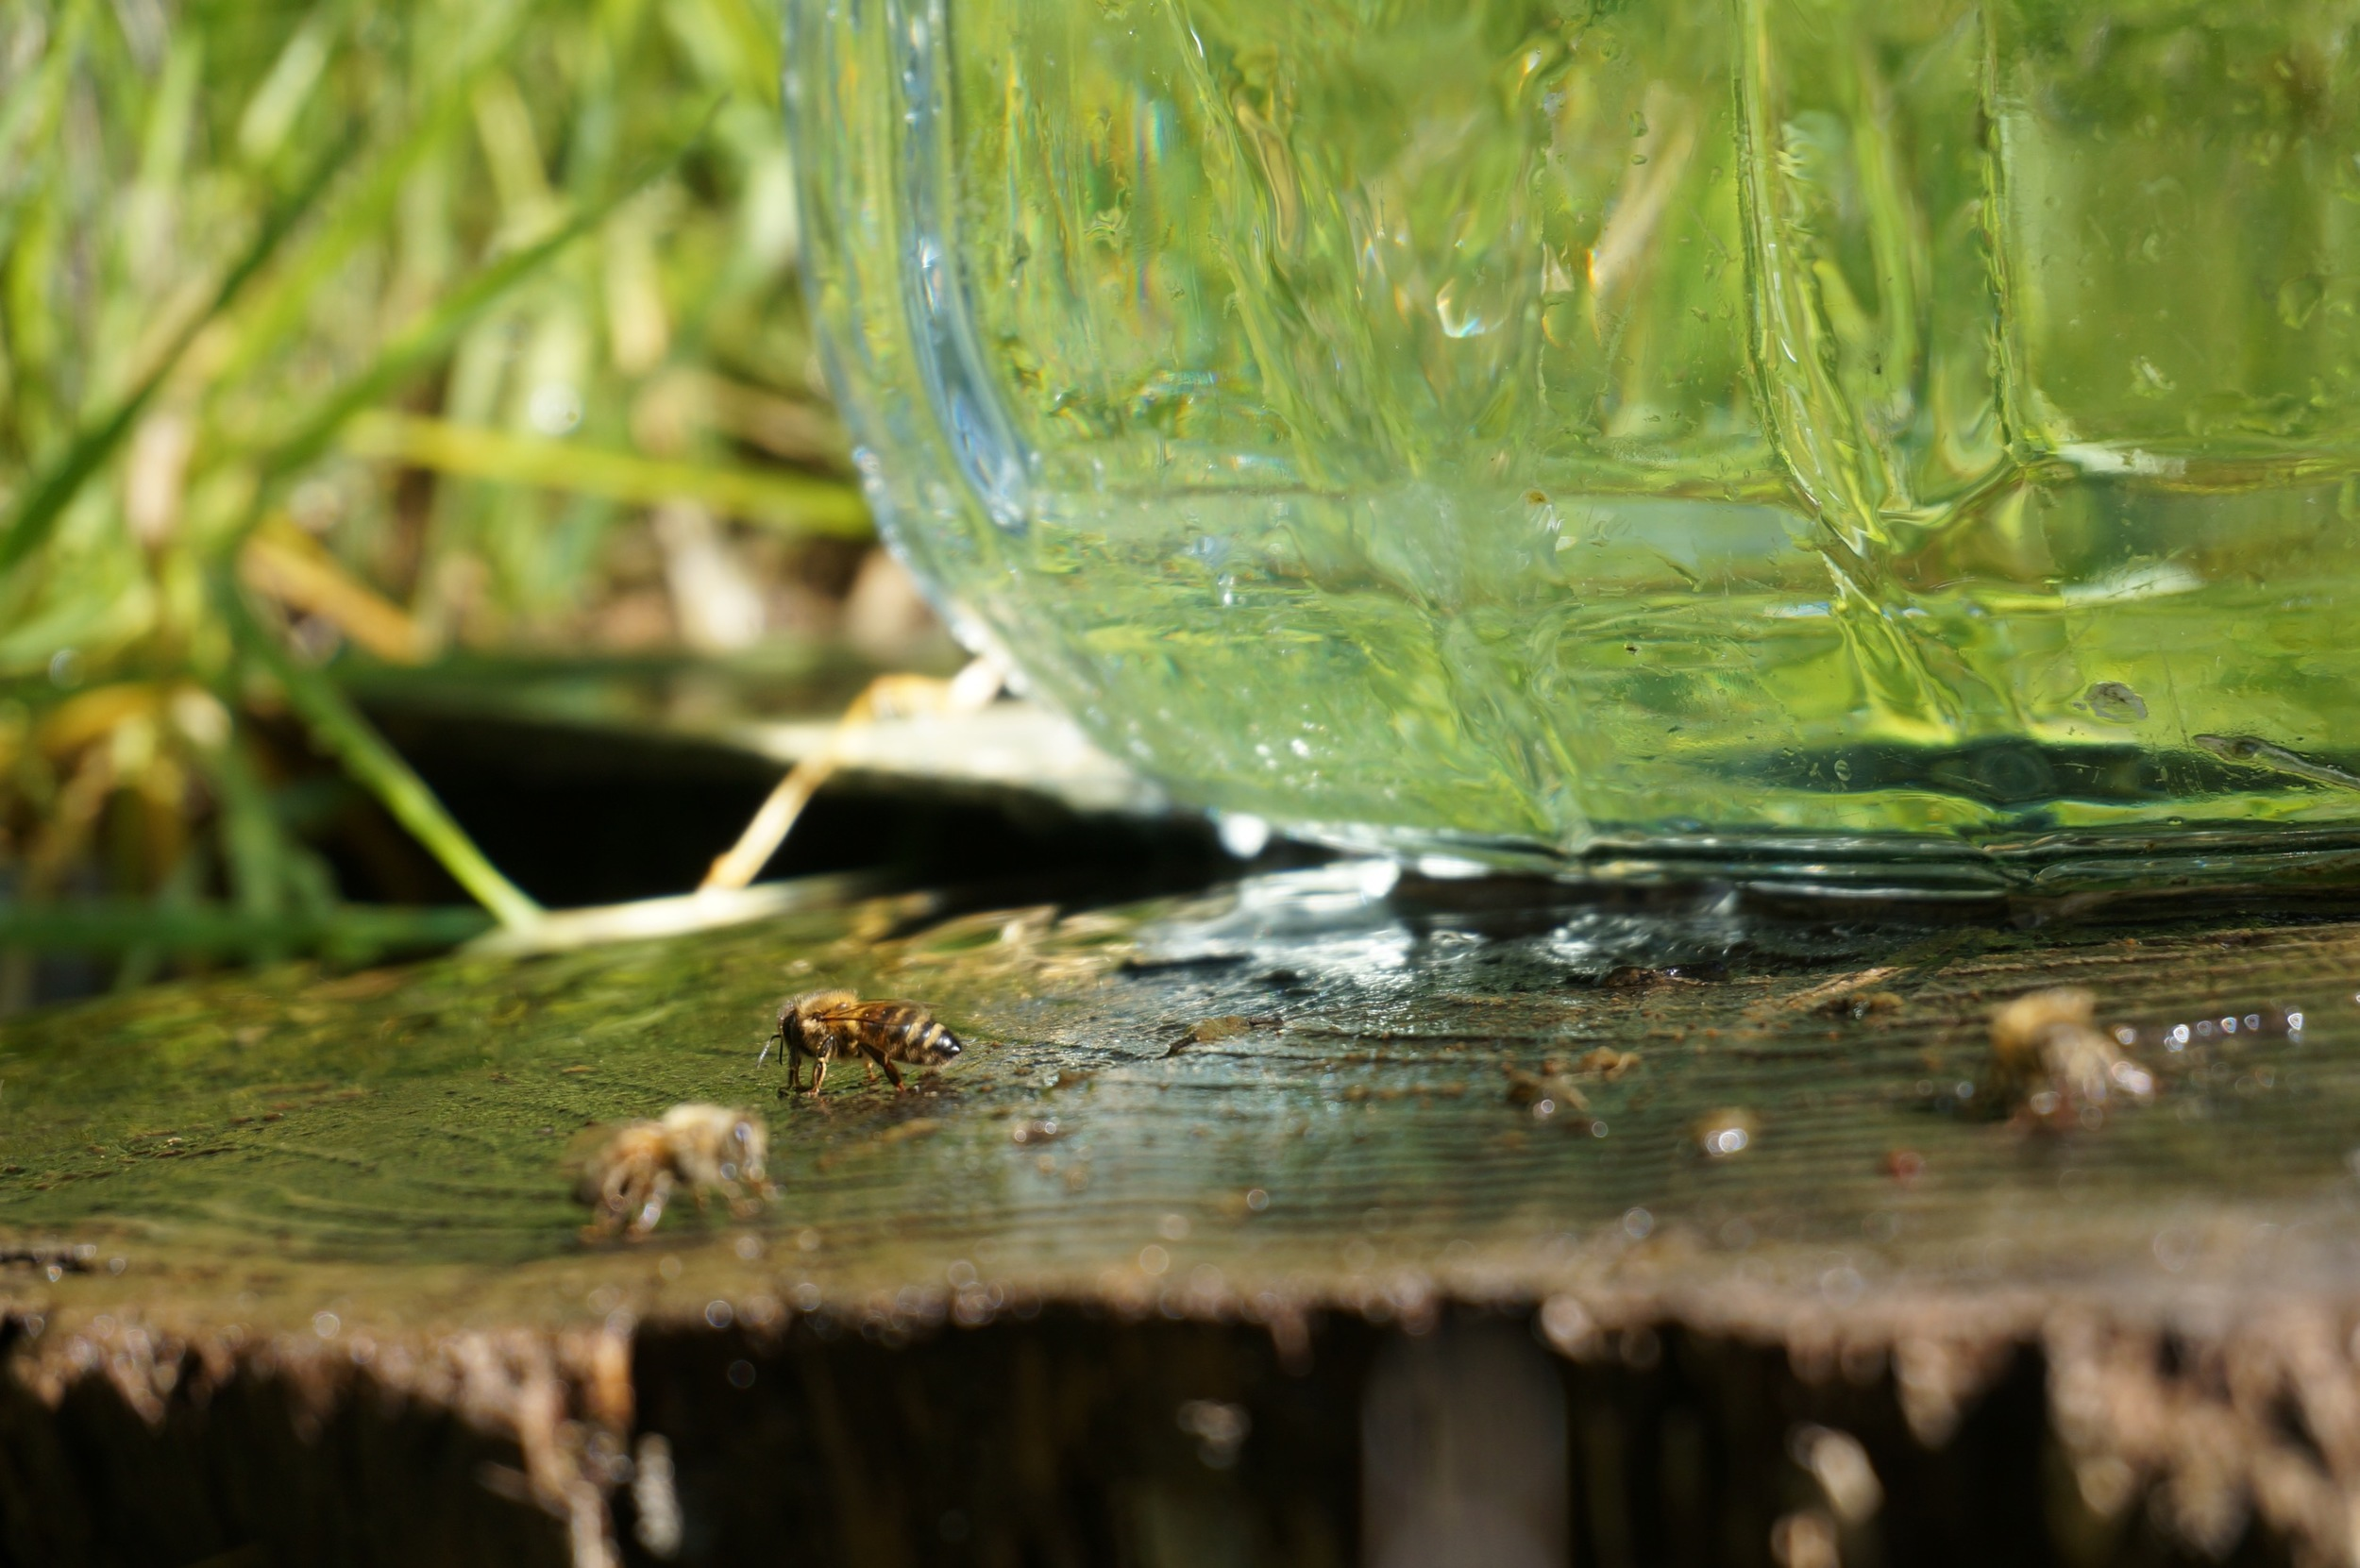 Bees getting a drink at the spring.